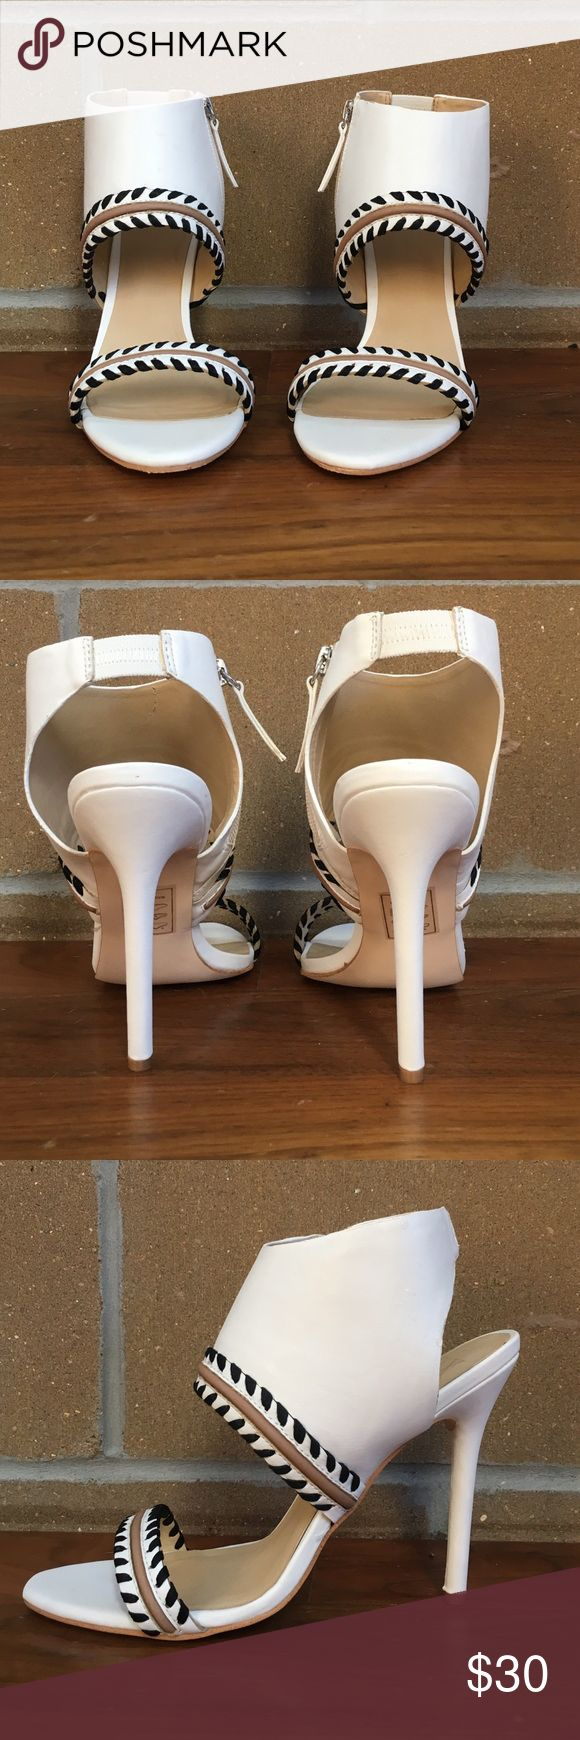 GX by  GWEN STEFANI white heel sandals US size 9.5. Designed by Gwen Stefani, Used once, did shoes care so it looks like new, with original box and protection paper.. GX by Gwen Stefani Shoes Sandals